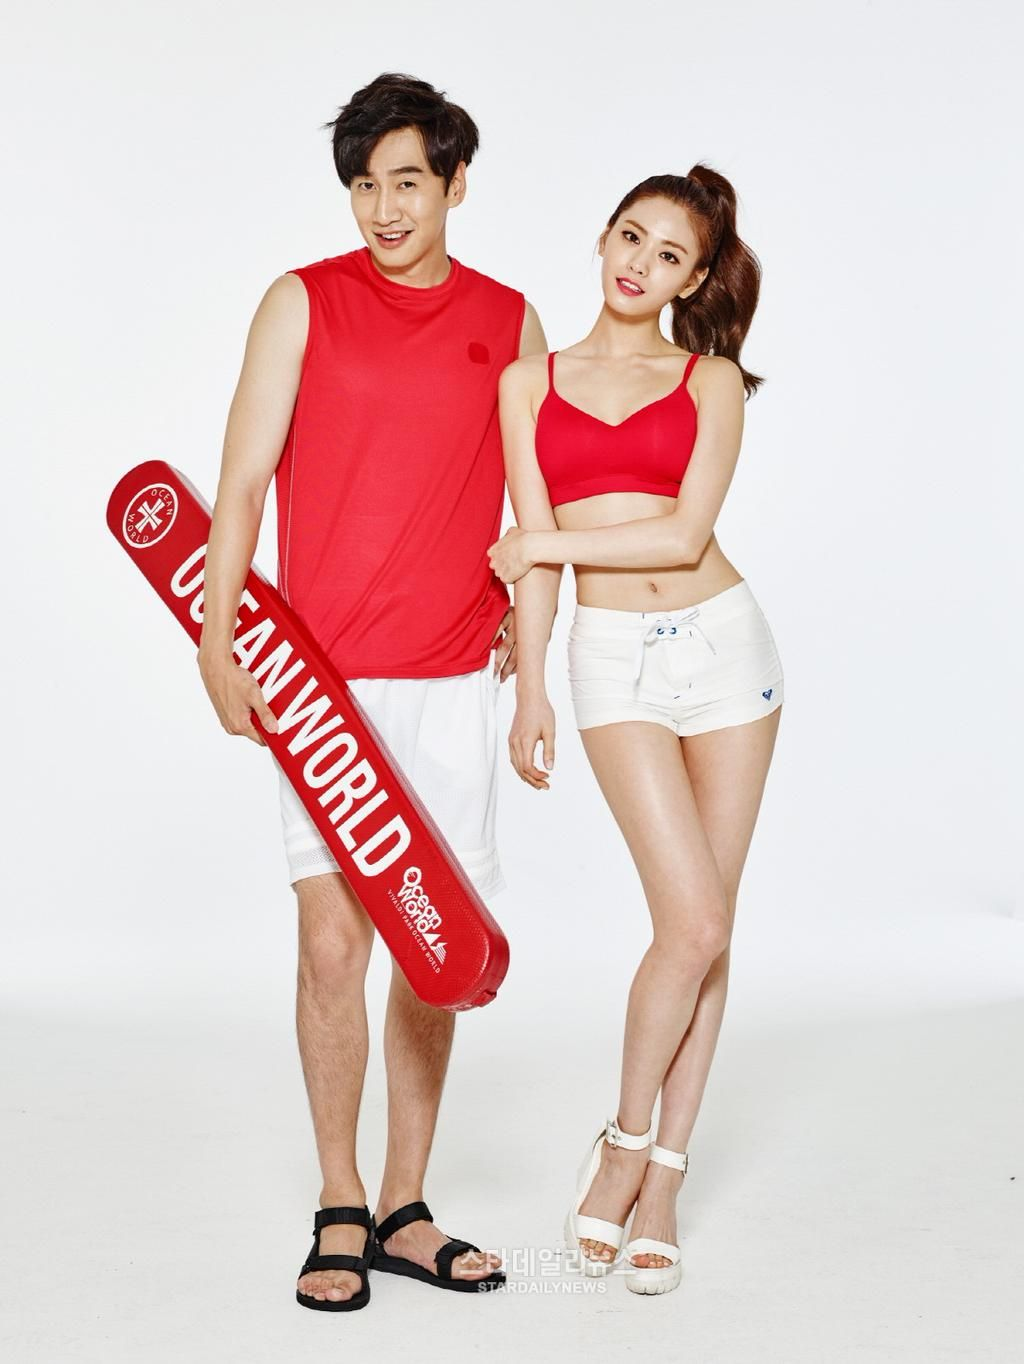 Lee Kwang Soo and After School's Nana become the new models for Ocean World